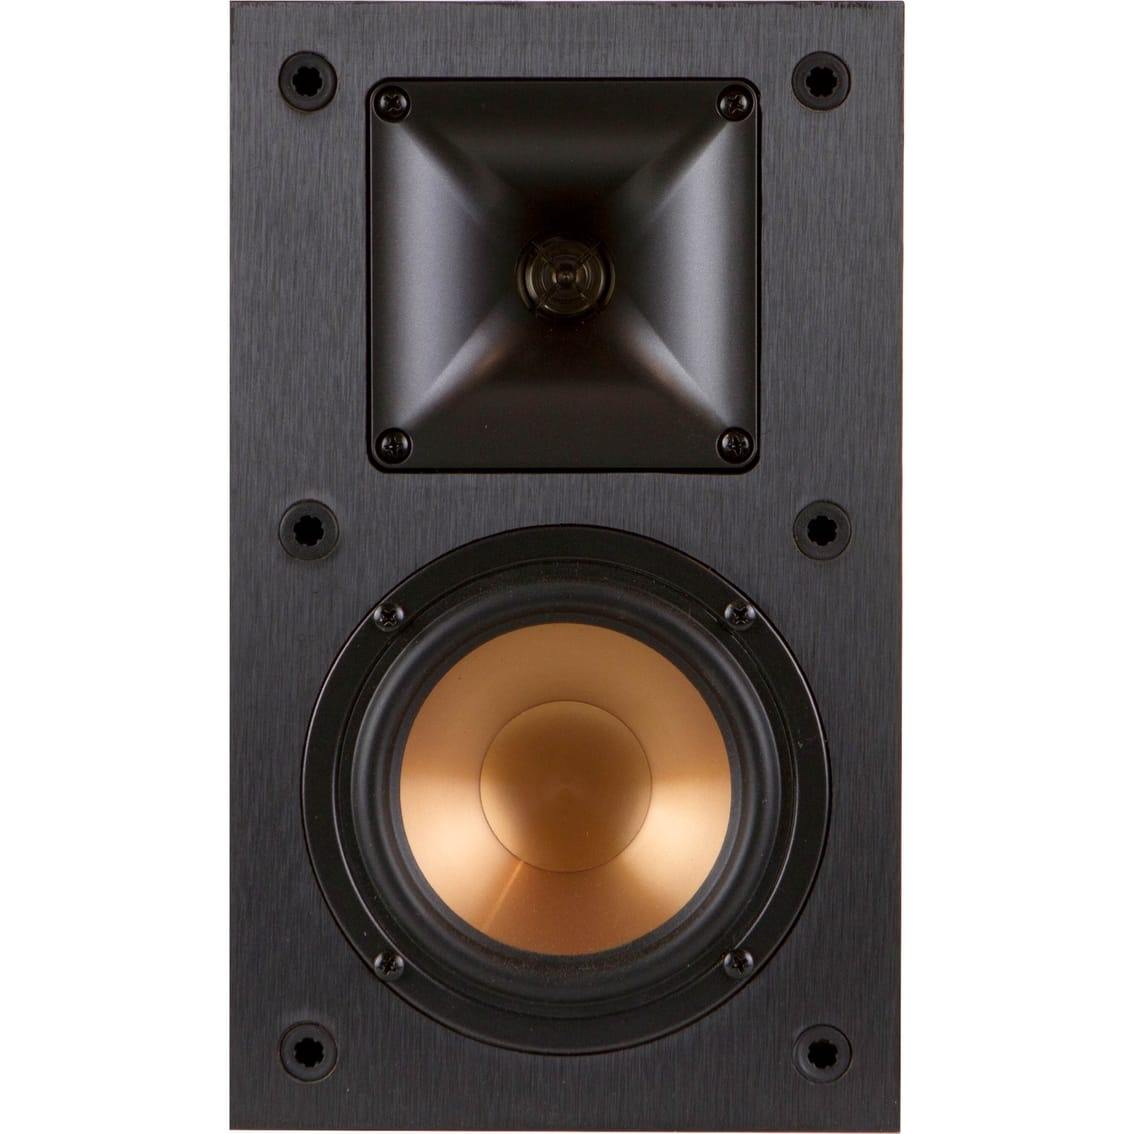 AAFES only - Klipsch R-14M Reference Bookshelf Speakers $70.95